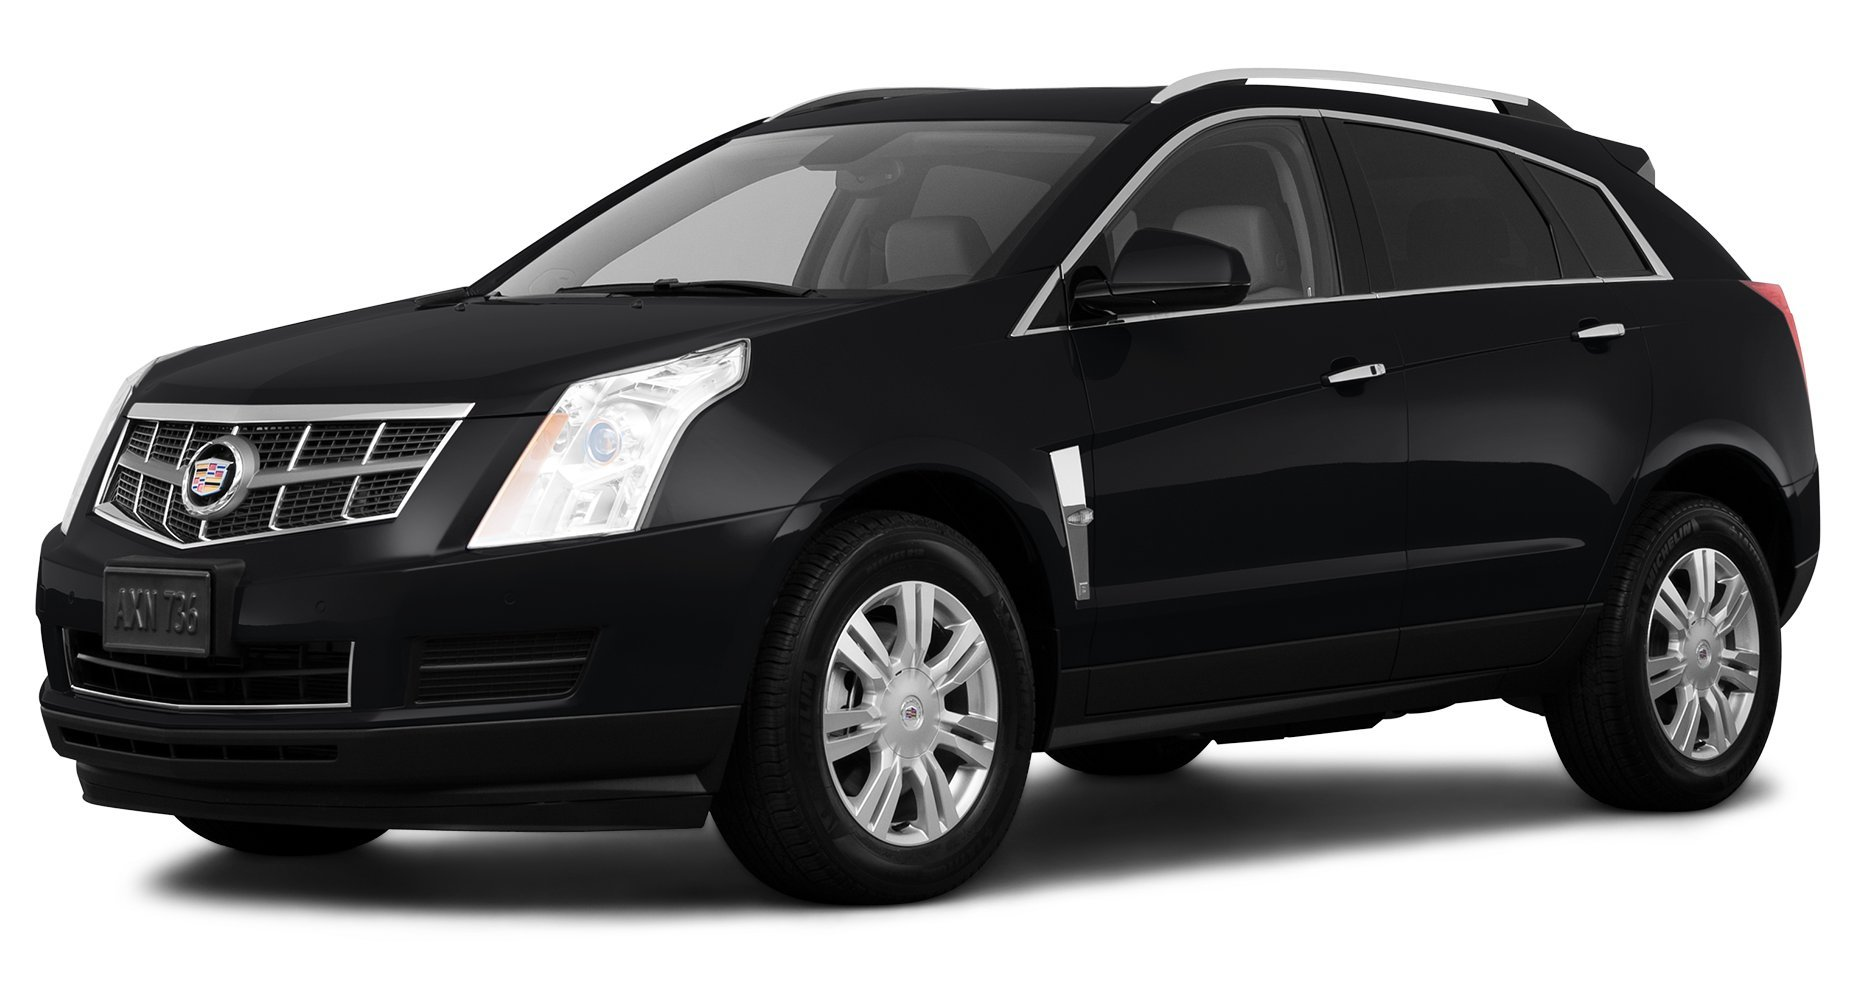 2011 Cadillac Srx Reviews Images And Specs Vehicles Brake Wiring Base Front Wheel Drive 4 Door